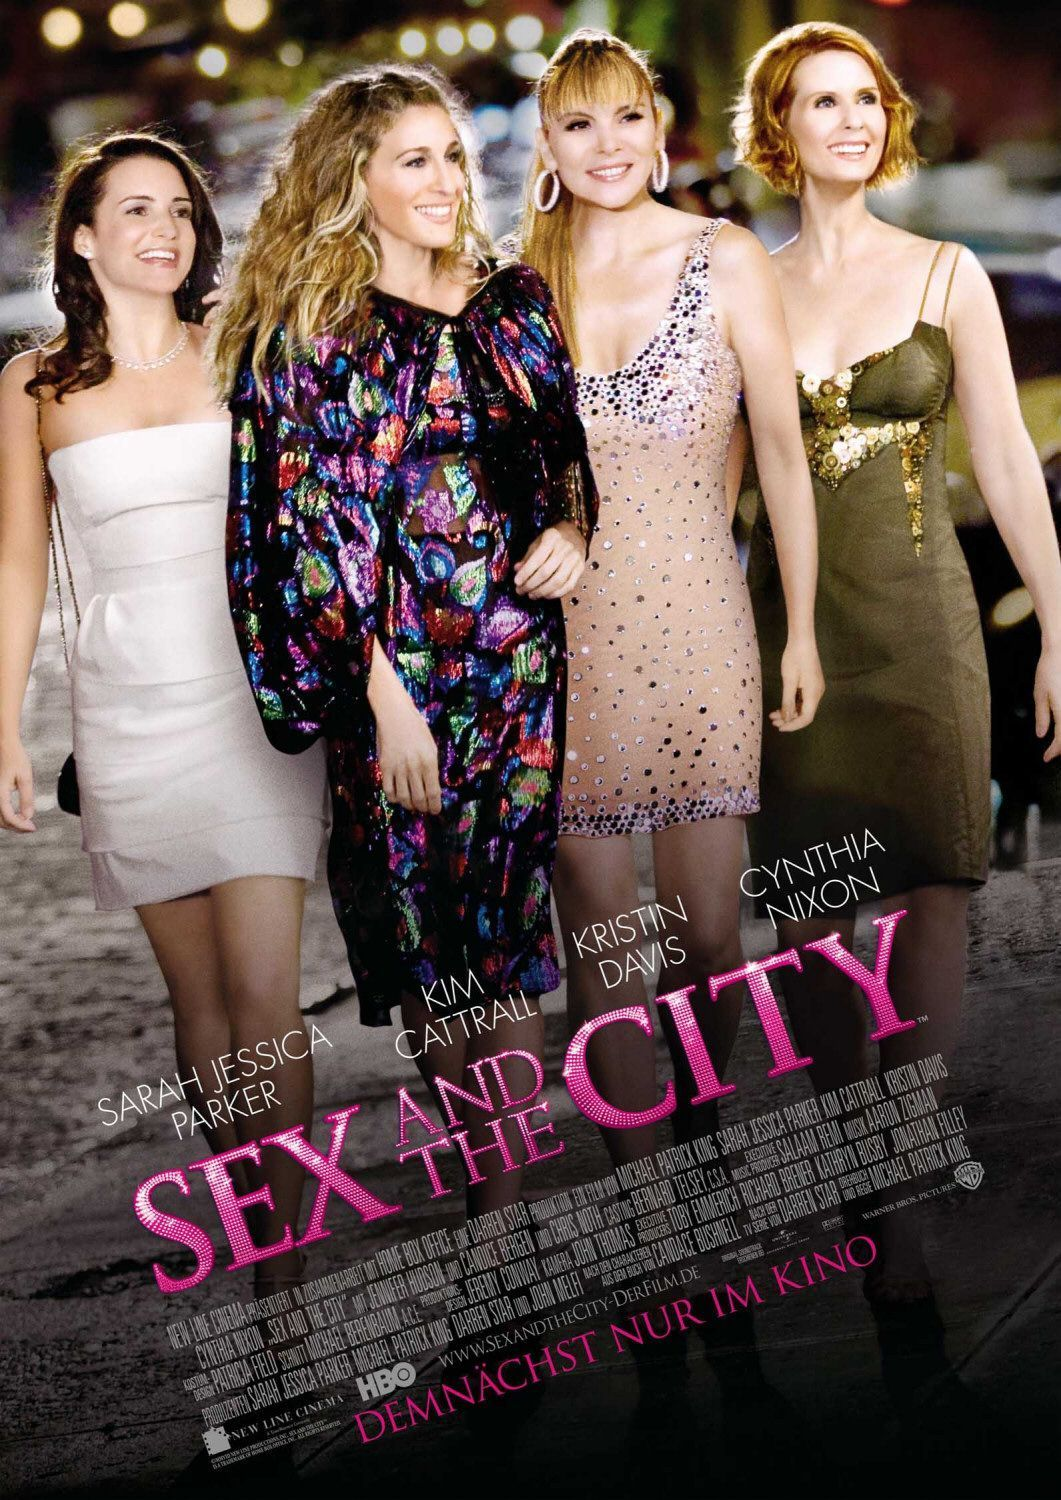 Sex and the city movie what happens